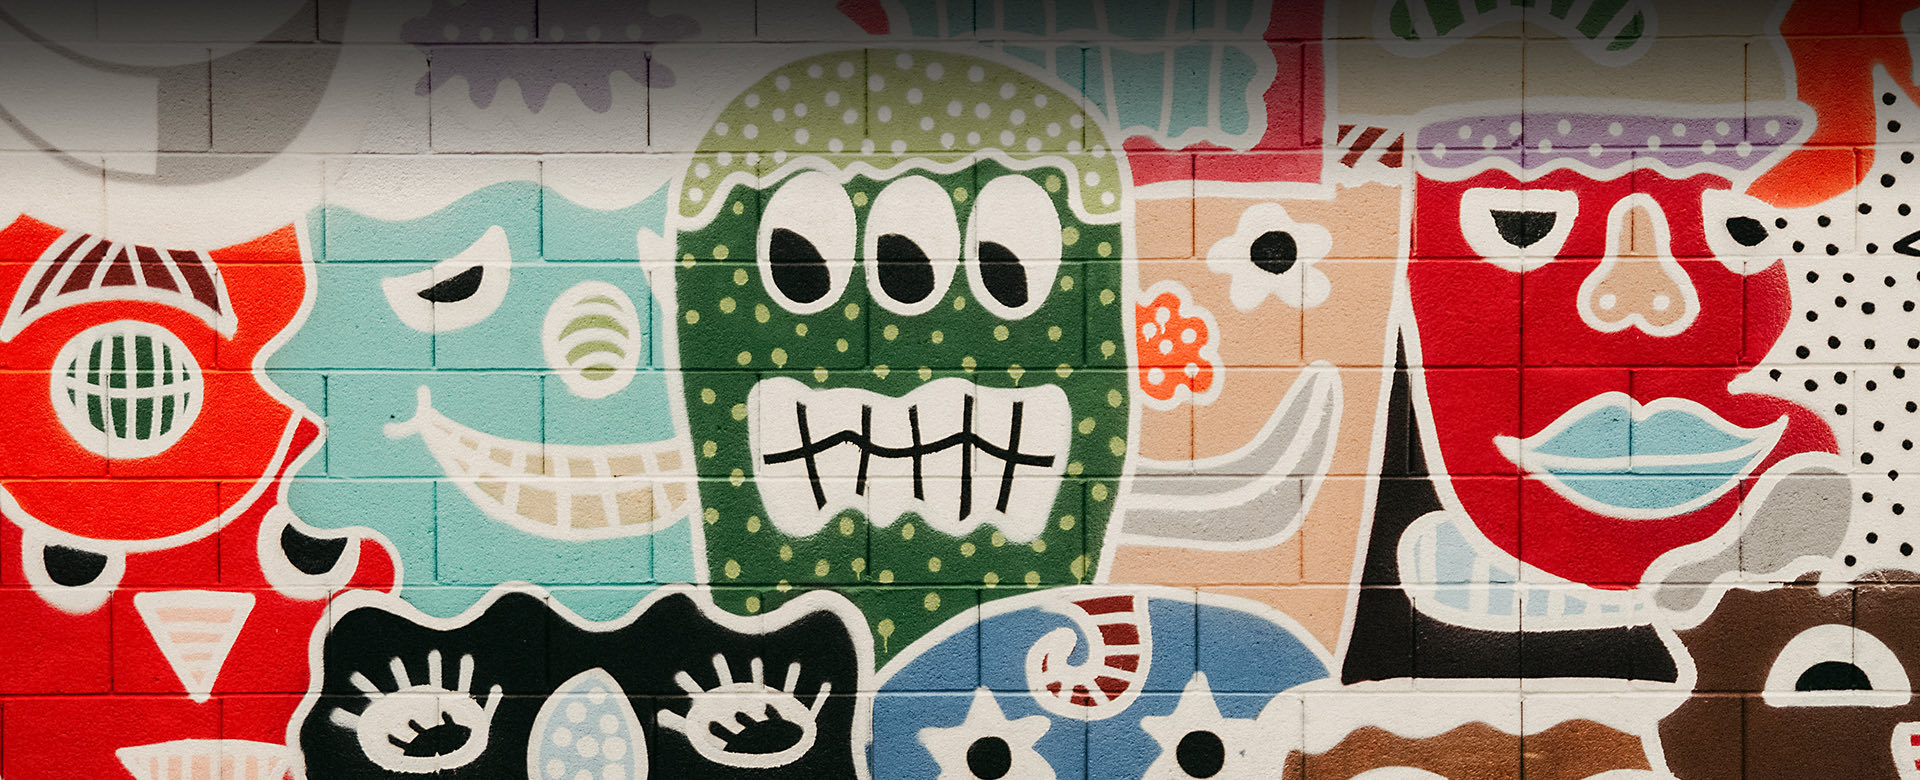 mural with collage of funky smiling faces of all colors